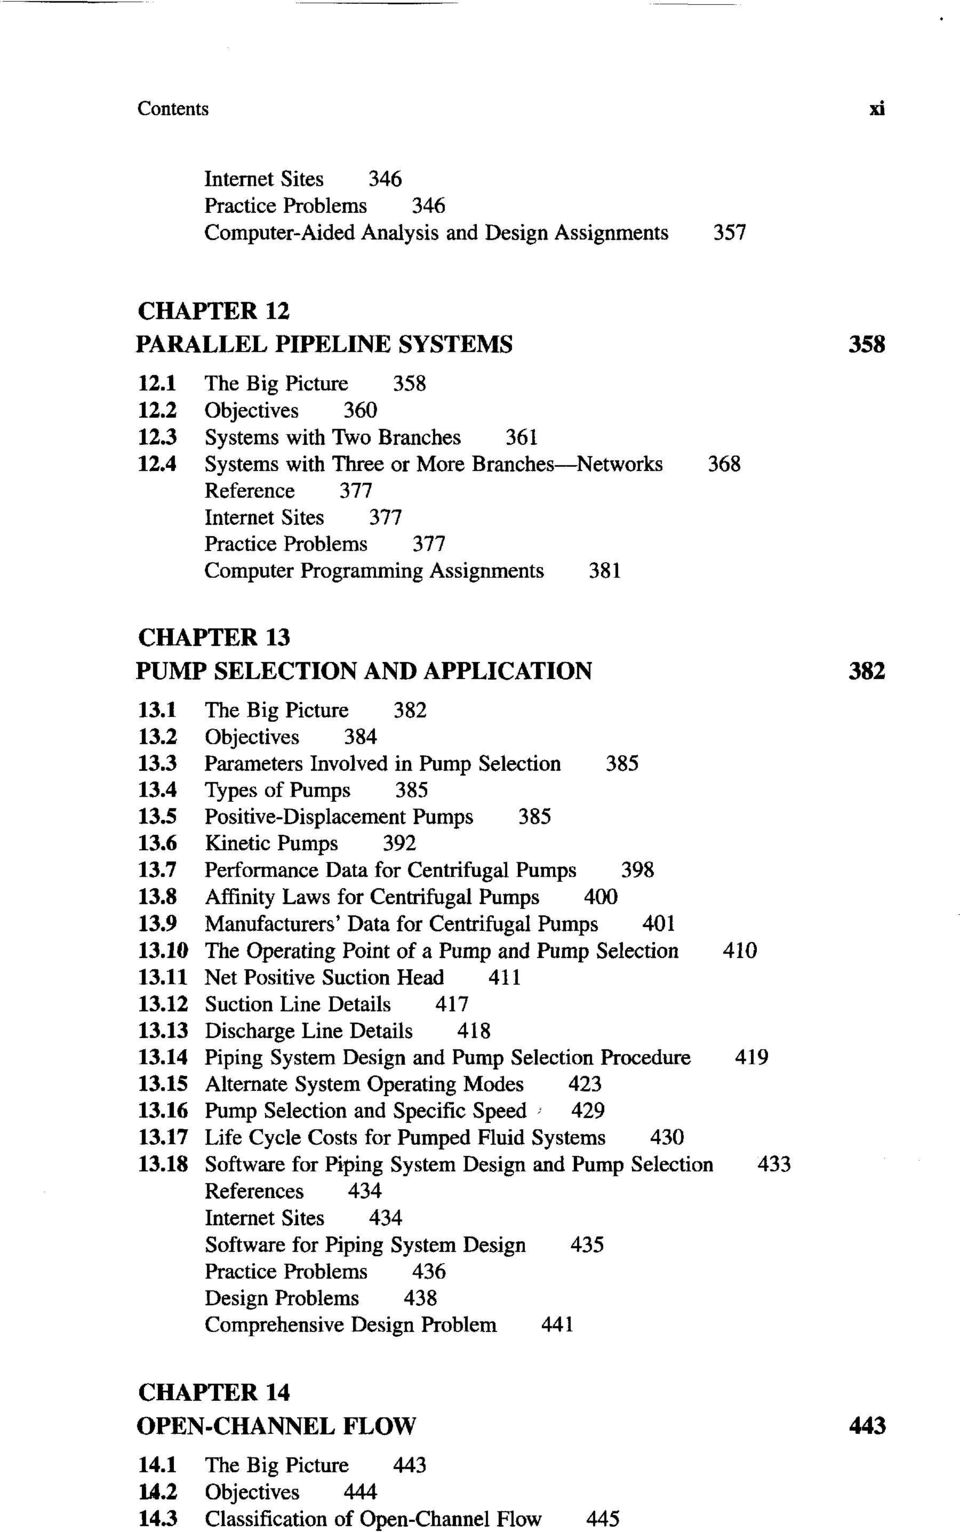 4 Systems with Three or More Branches Networks 368 Reference 377 Internet Sites 377 Practice Problems 377 Computer Programming Assignments 381 CHAPTER 13 PUMP SELECTION AND APPLICATION 382 13.